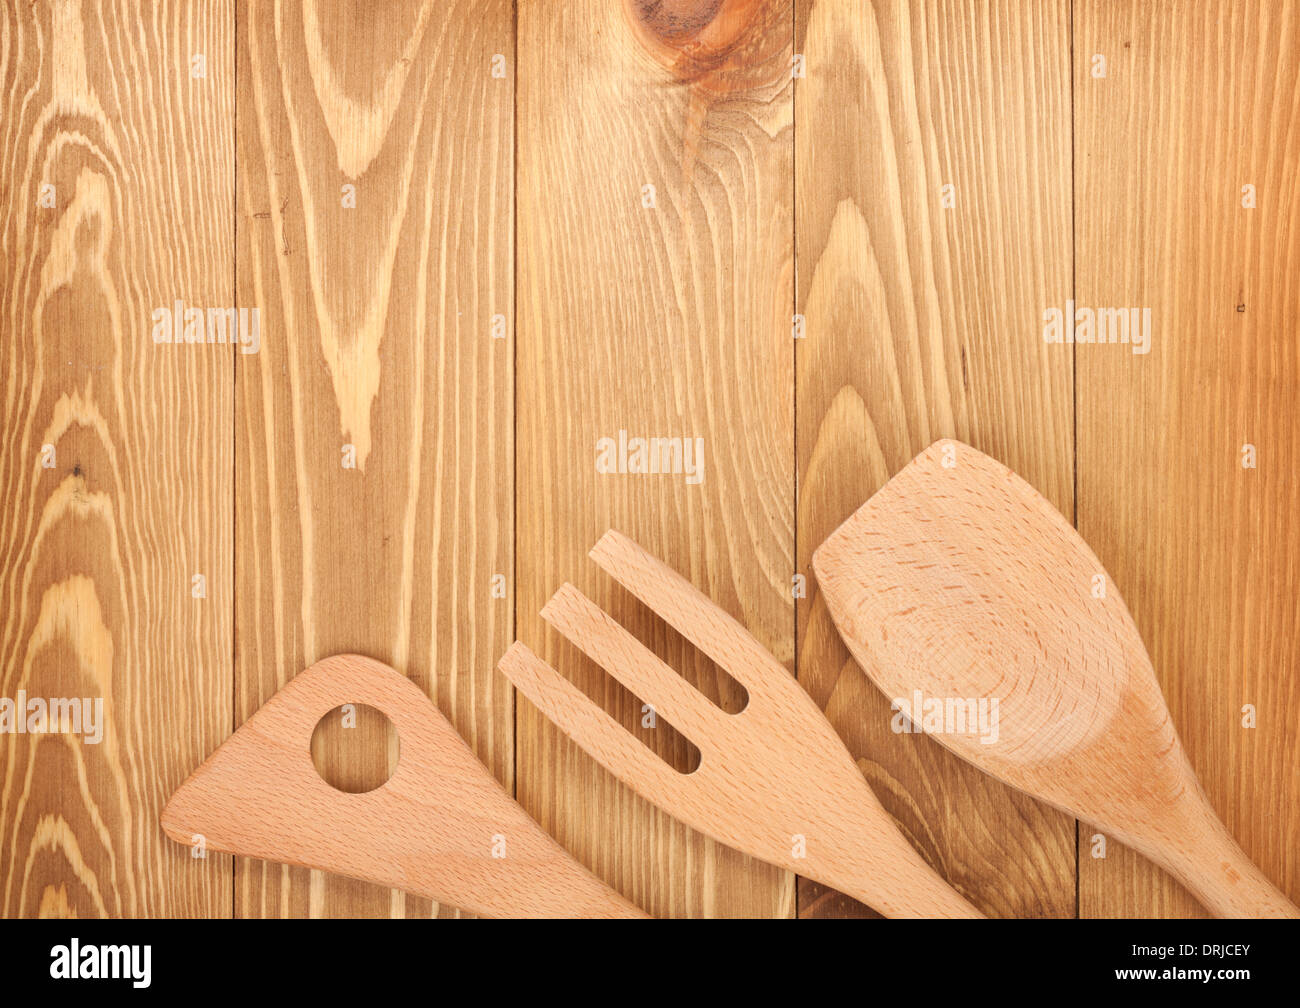 Kitchen Utensils Background kitchen utensils on wooden table background. view from above with